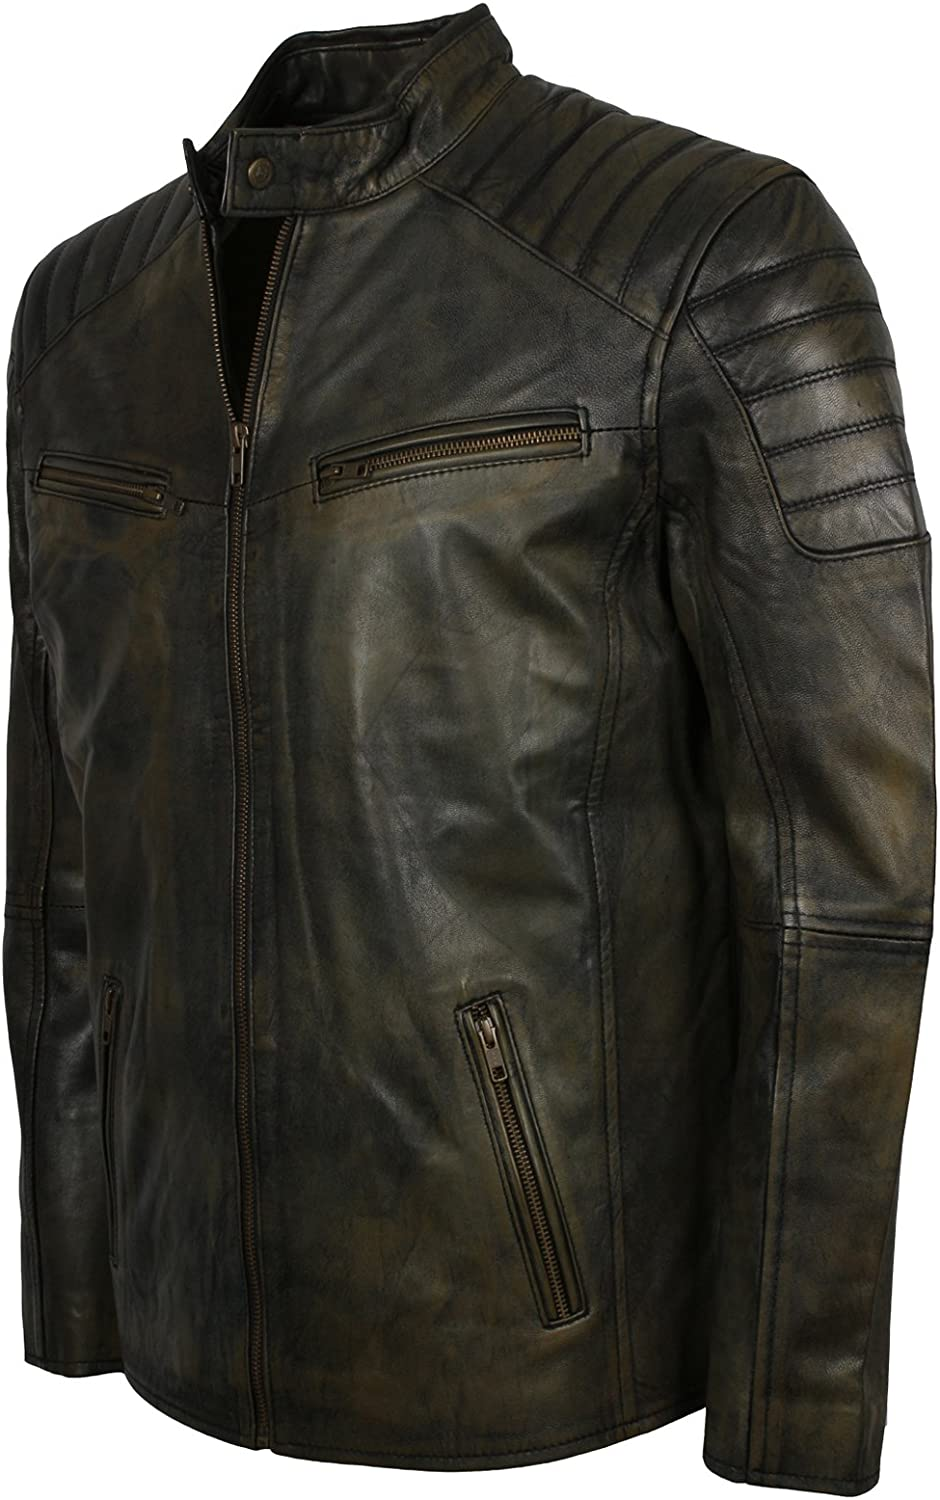 Herts Leather Mens Dirty Rust Style Black HQ Leather Jacket For Biker Men